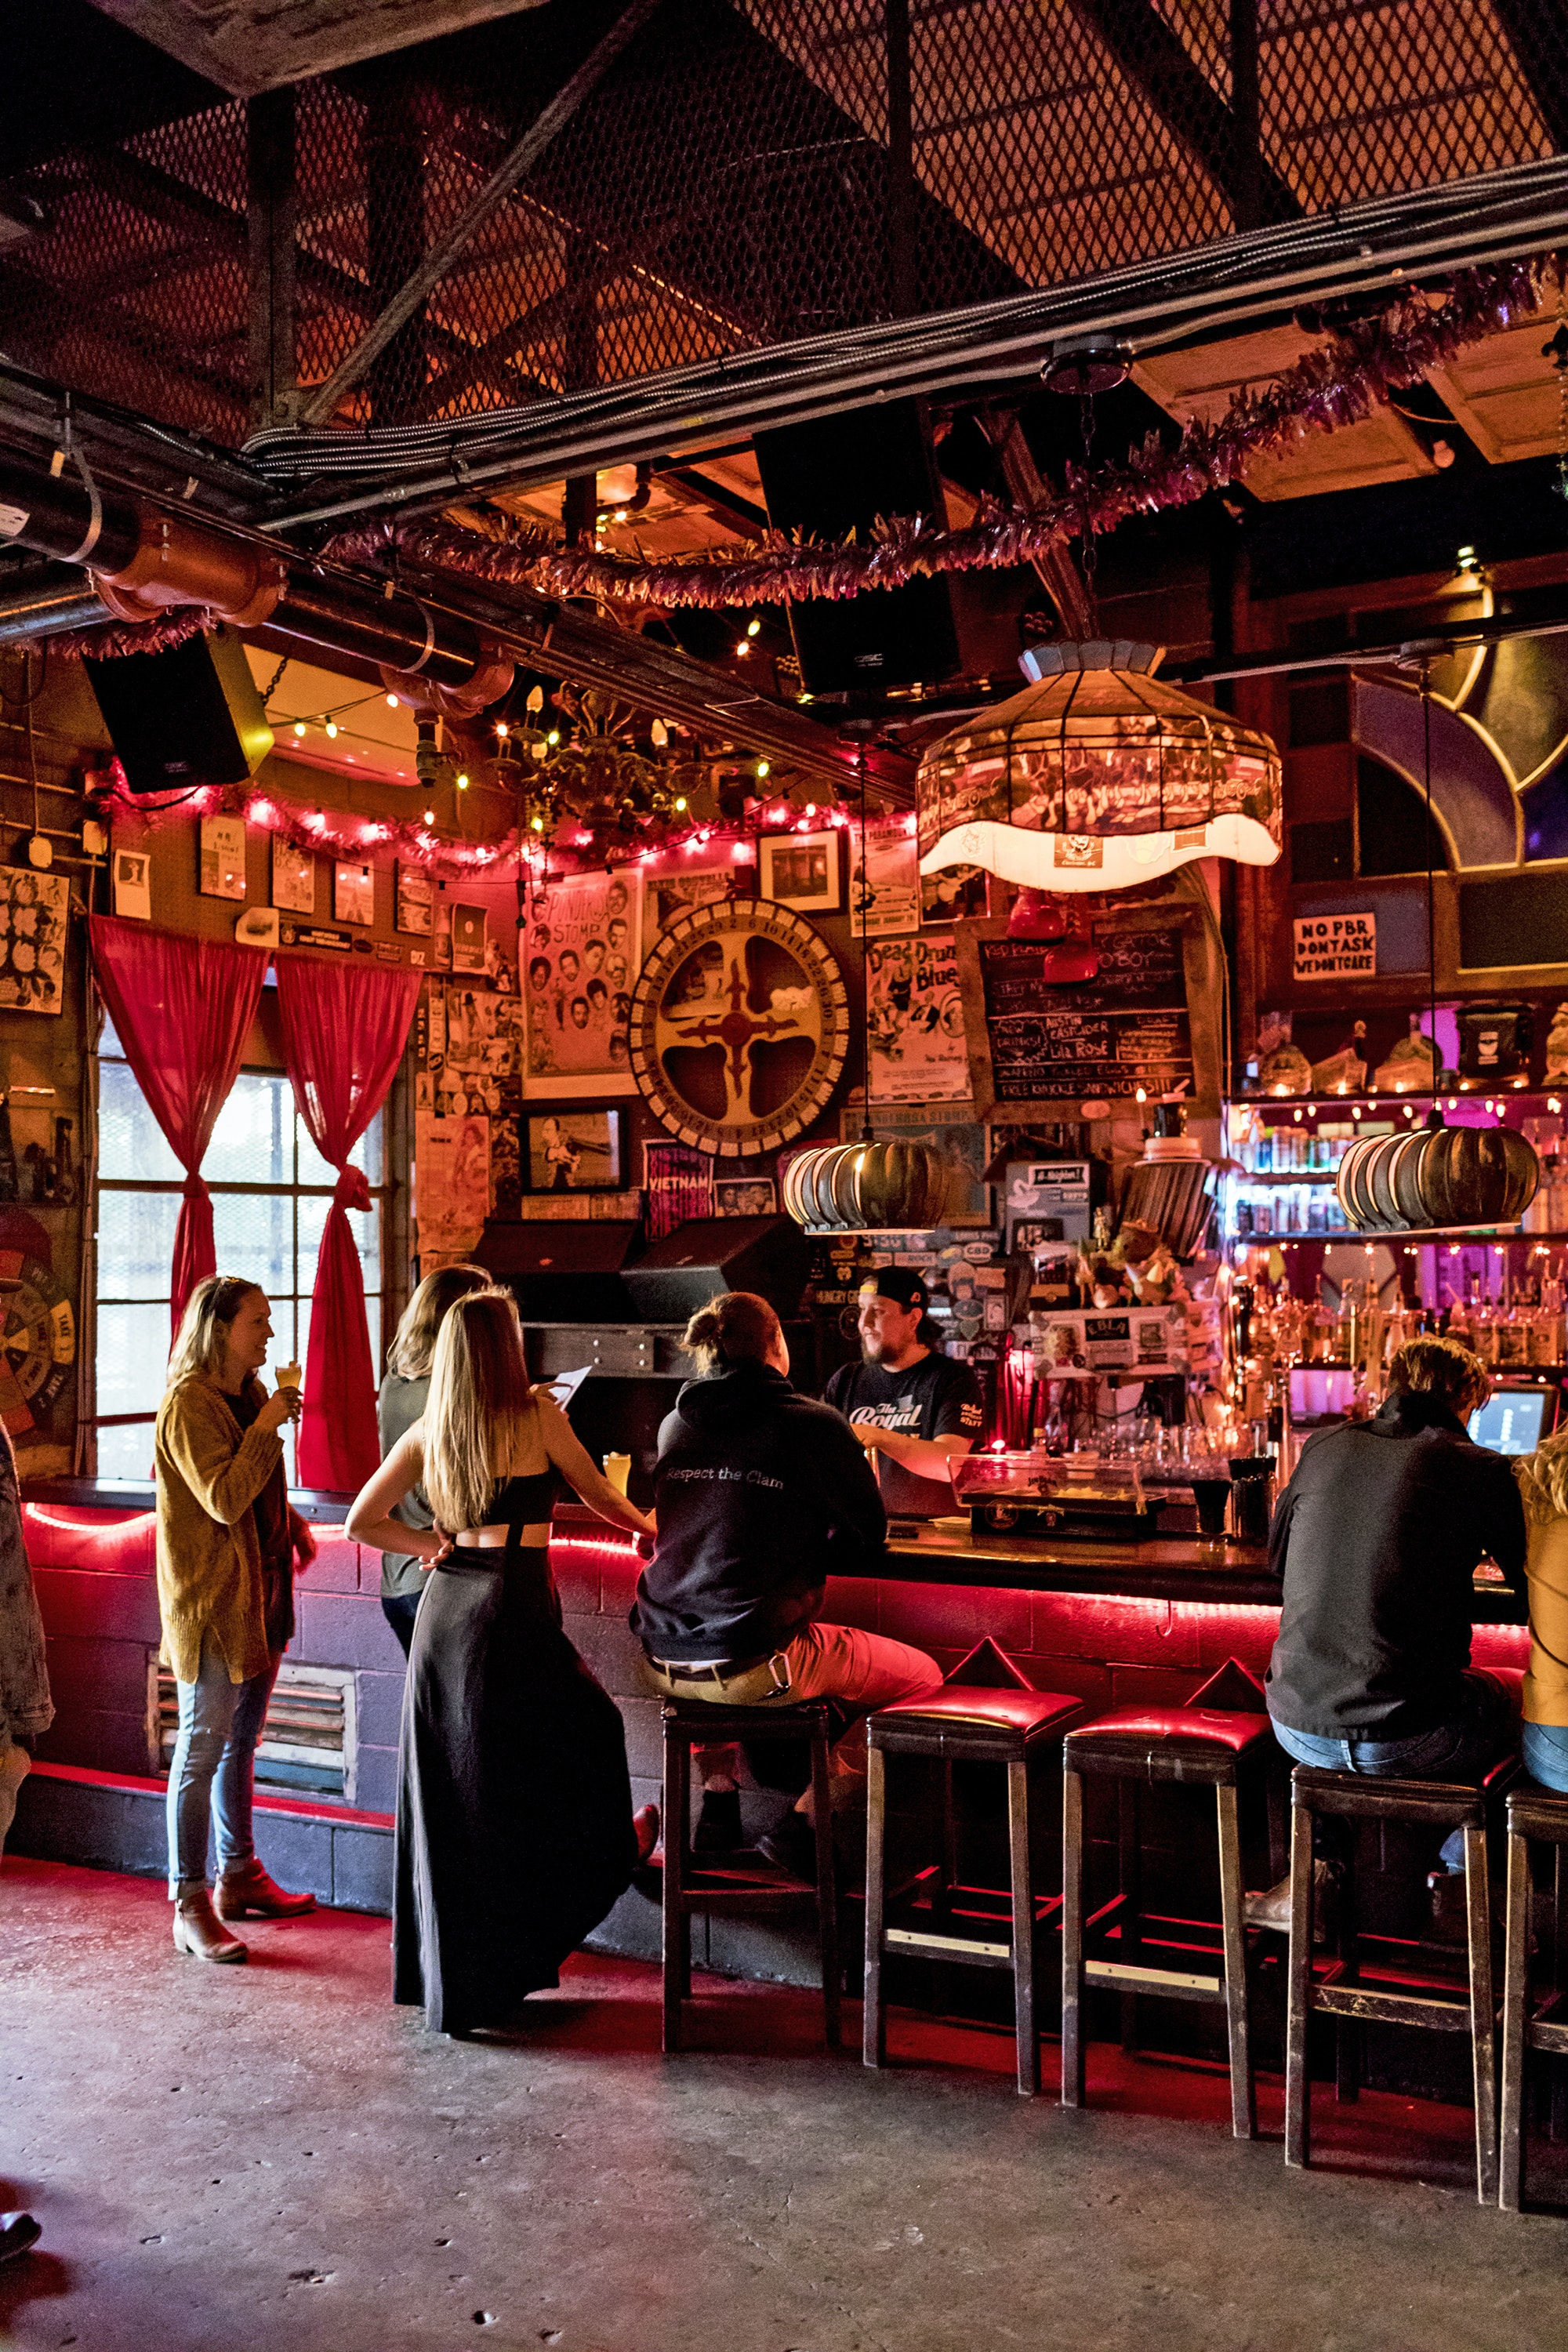 The Royal American's edgy design makes it an intriguing venue for local indie and touring musicians.